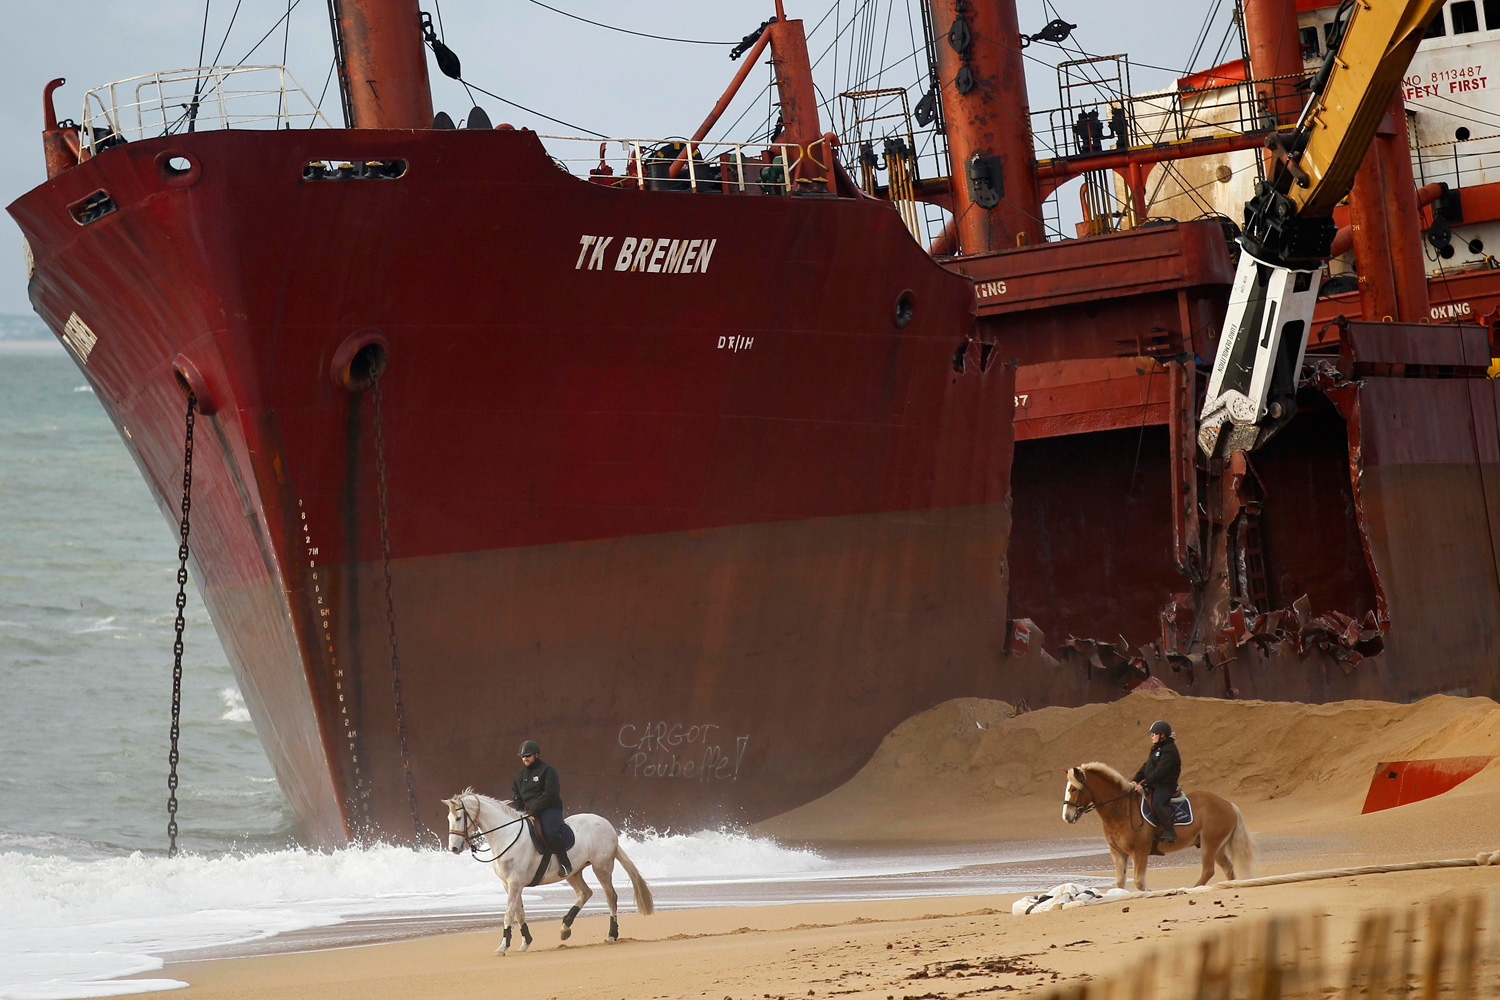 January 7, 2012. Security officers look on from their horses as a crane dismantles the Maltese-registered cargo ship in western France.